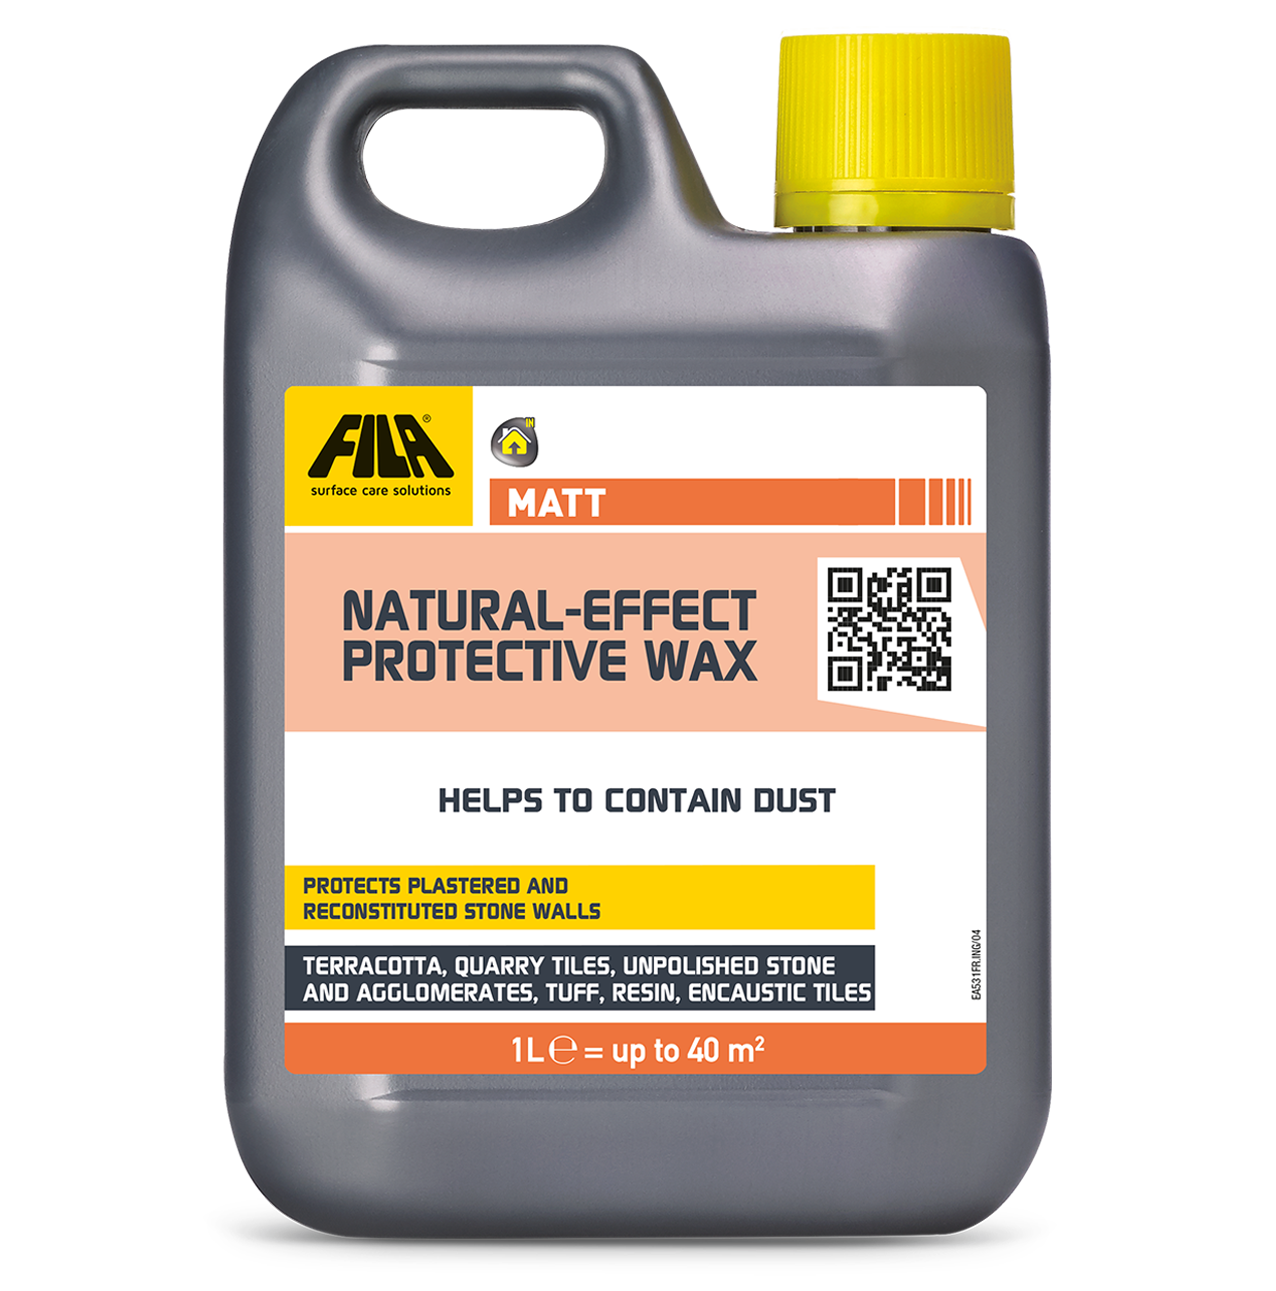 Thumbnail MATT - Natural-effect protective wax / 0